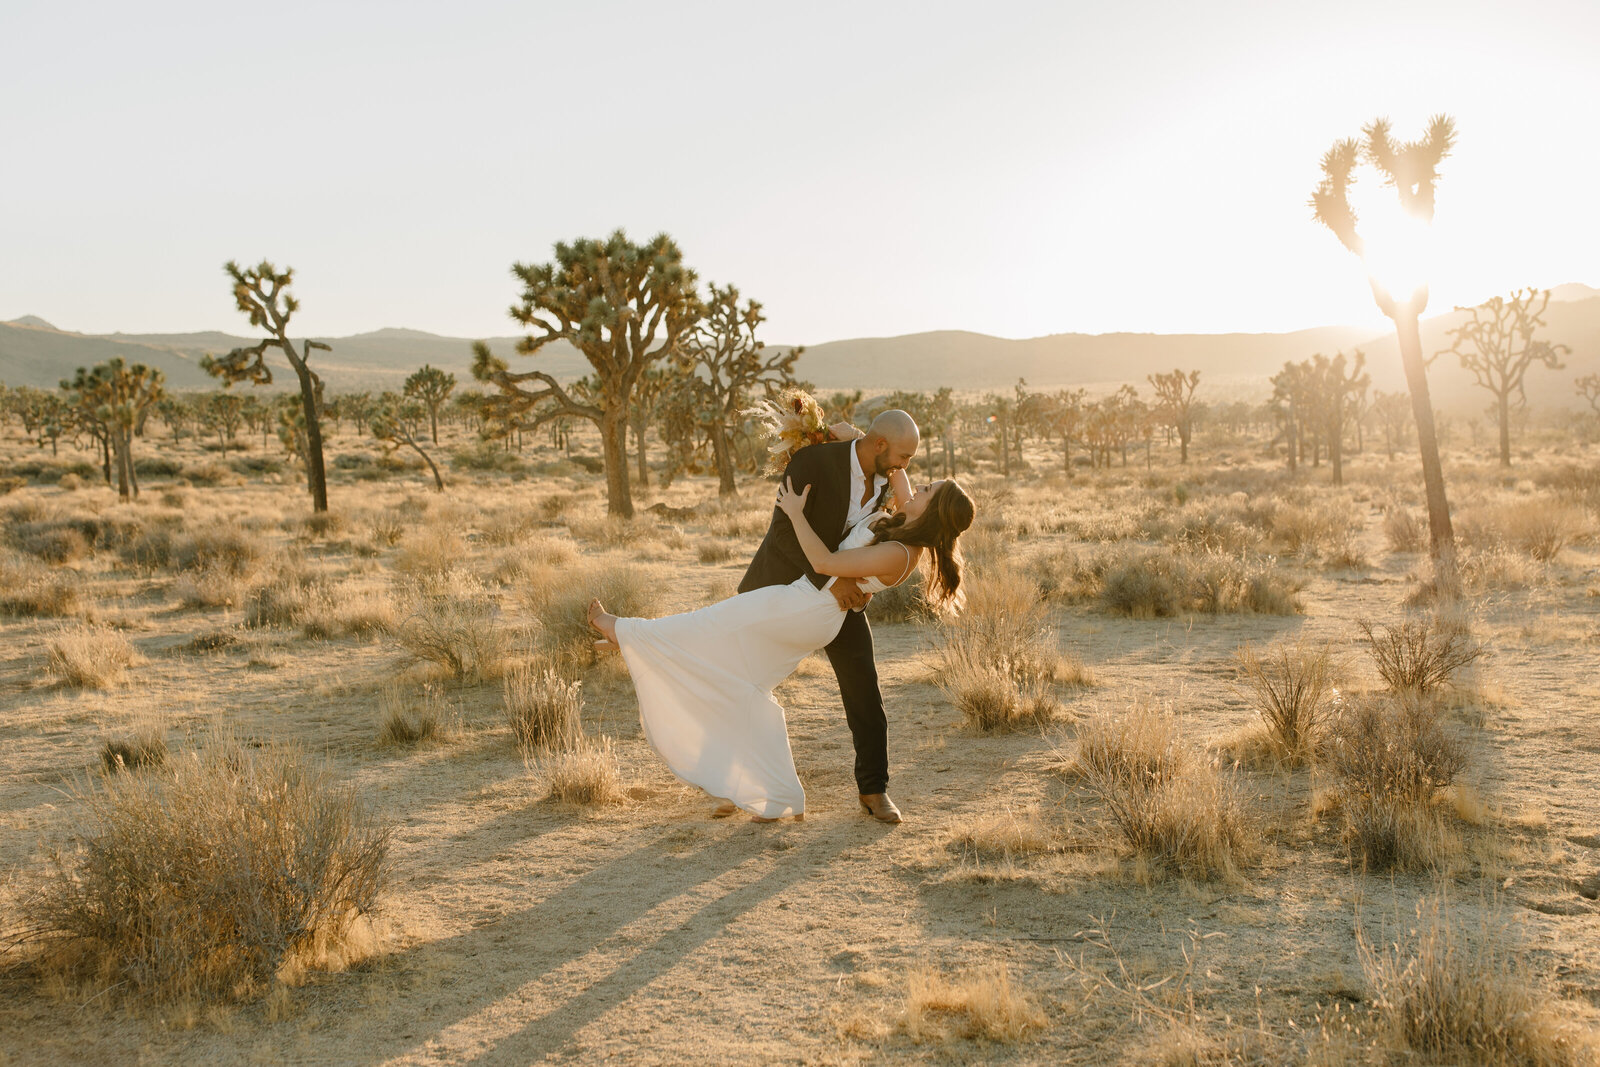 Ashley & Kristian - Joshua Tree National Park Elopement - Tess Laureen Photography @tesslaureen - 124 copy